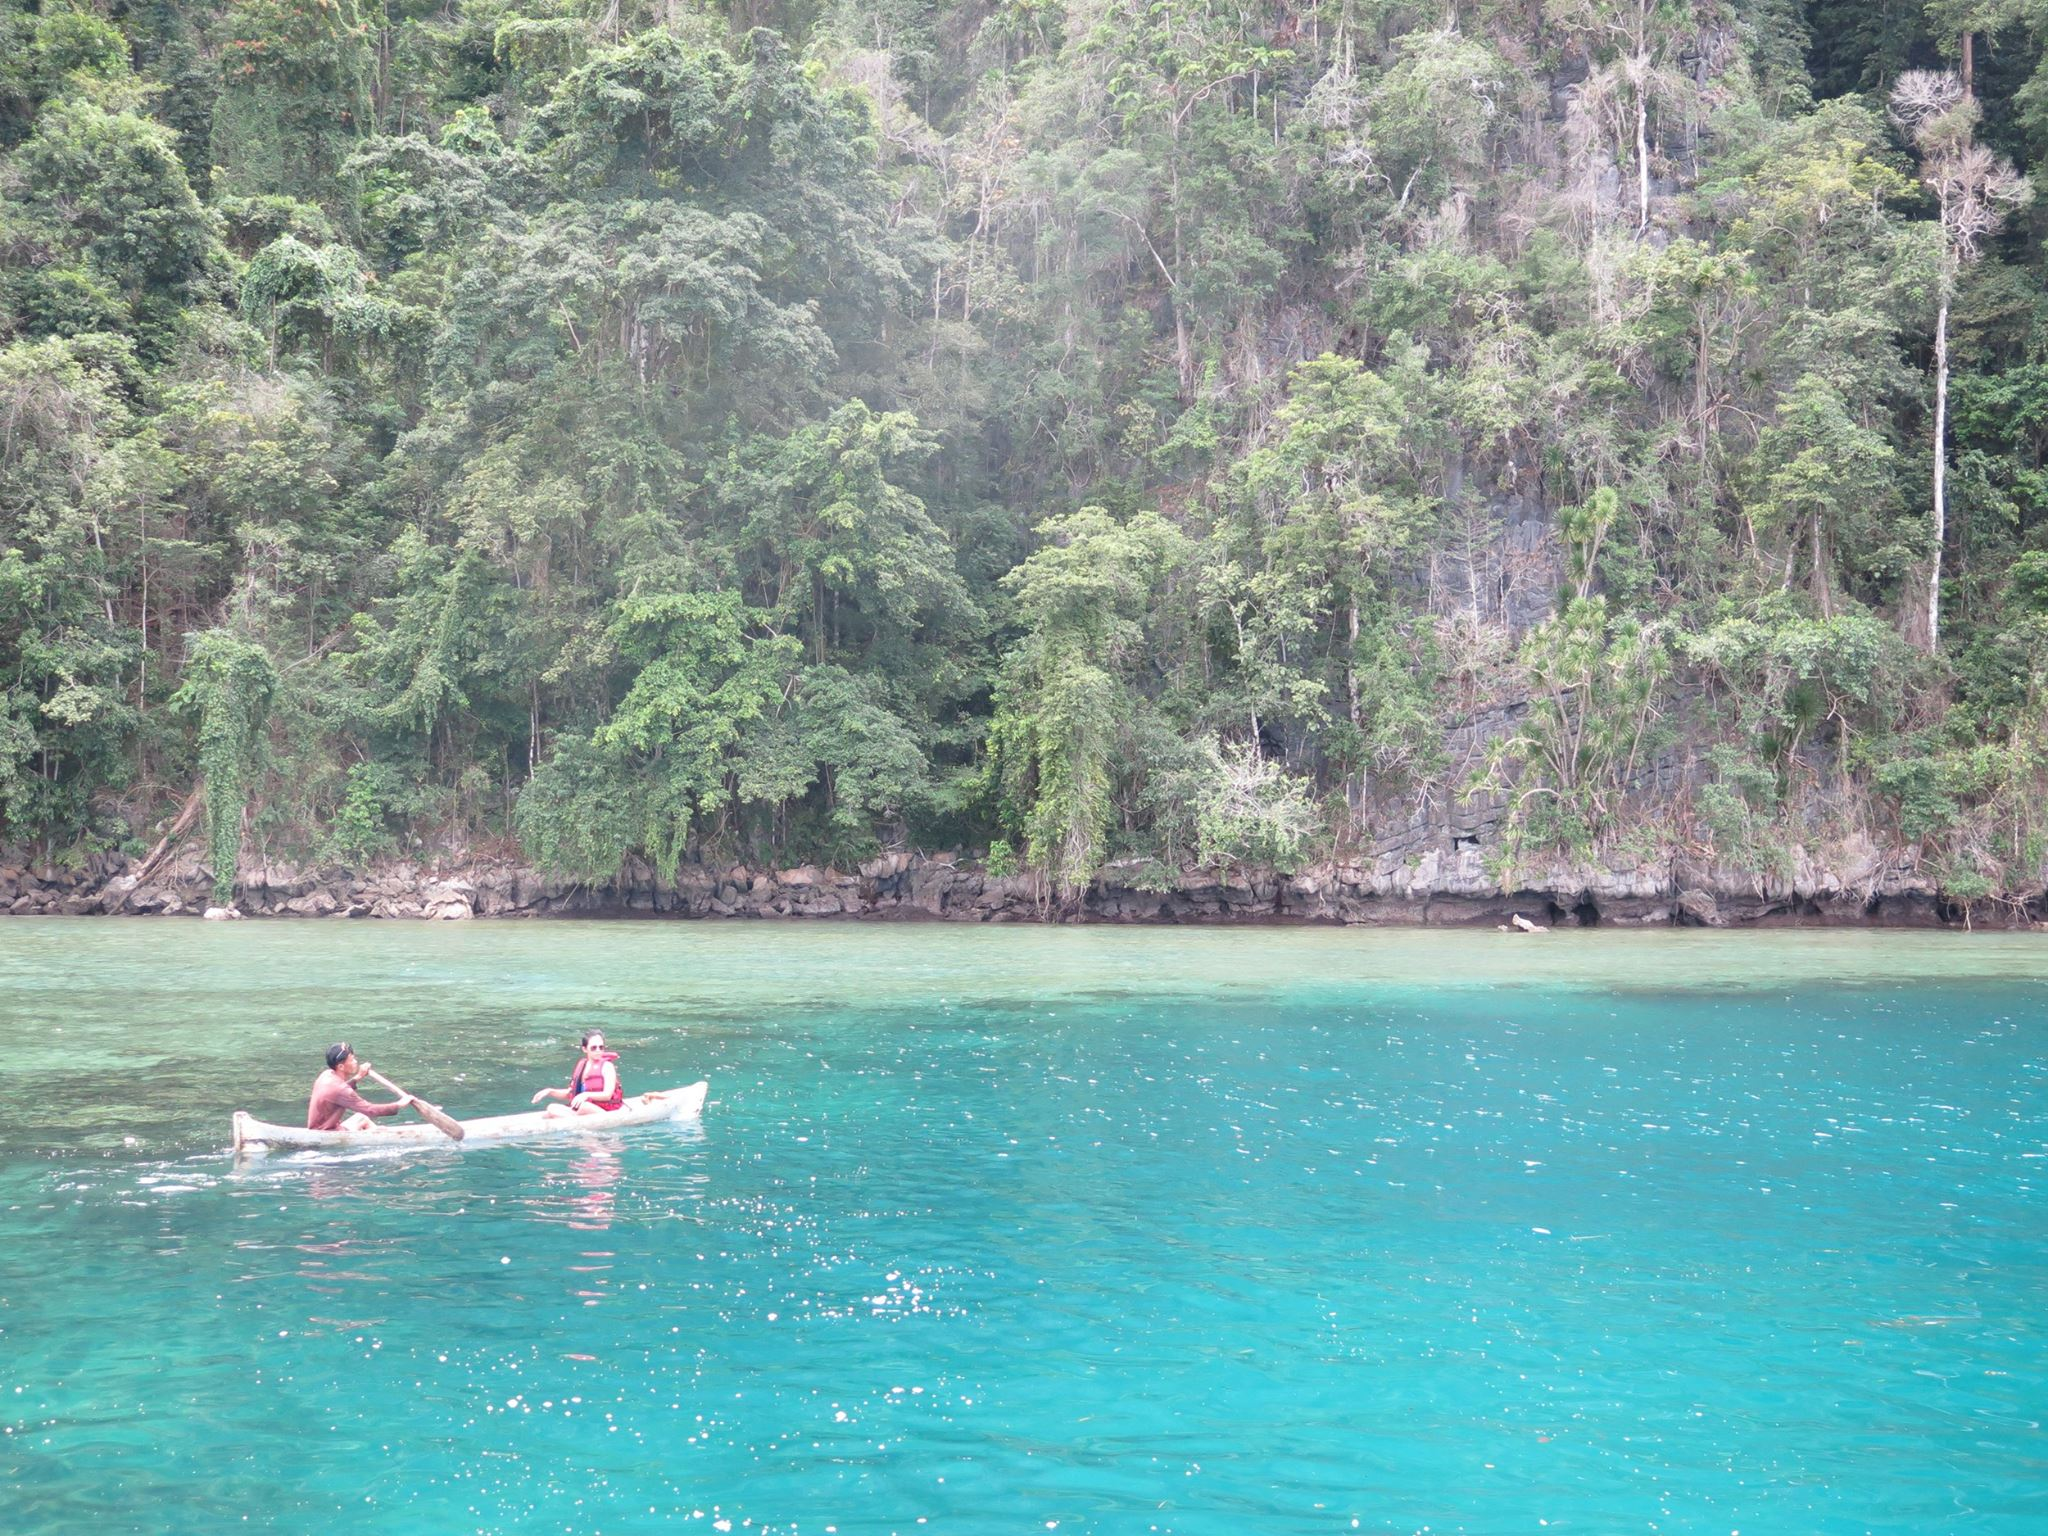 labengki-island-the-best-snorkling-place-in-the-world